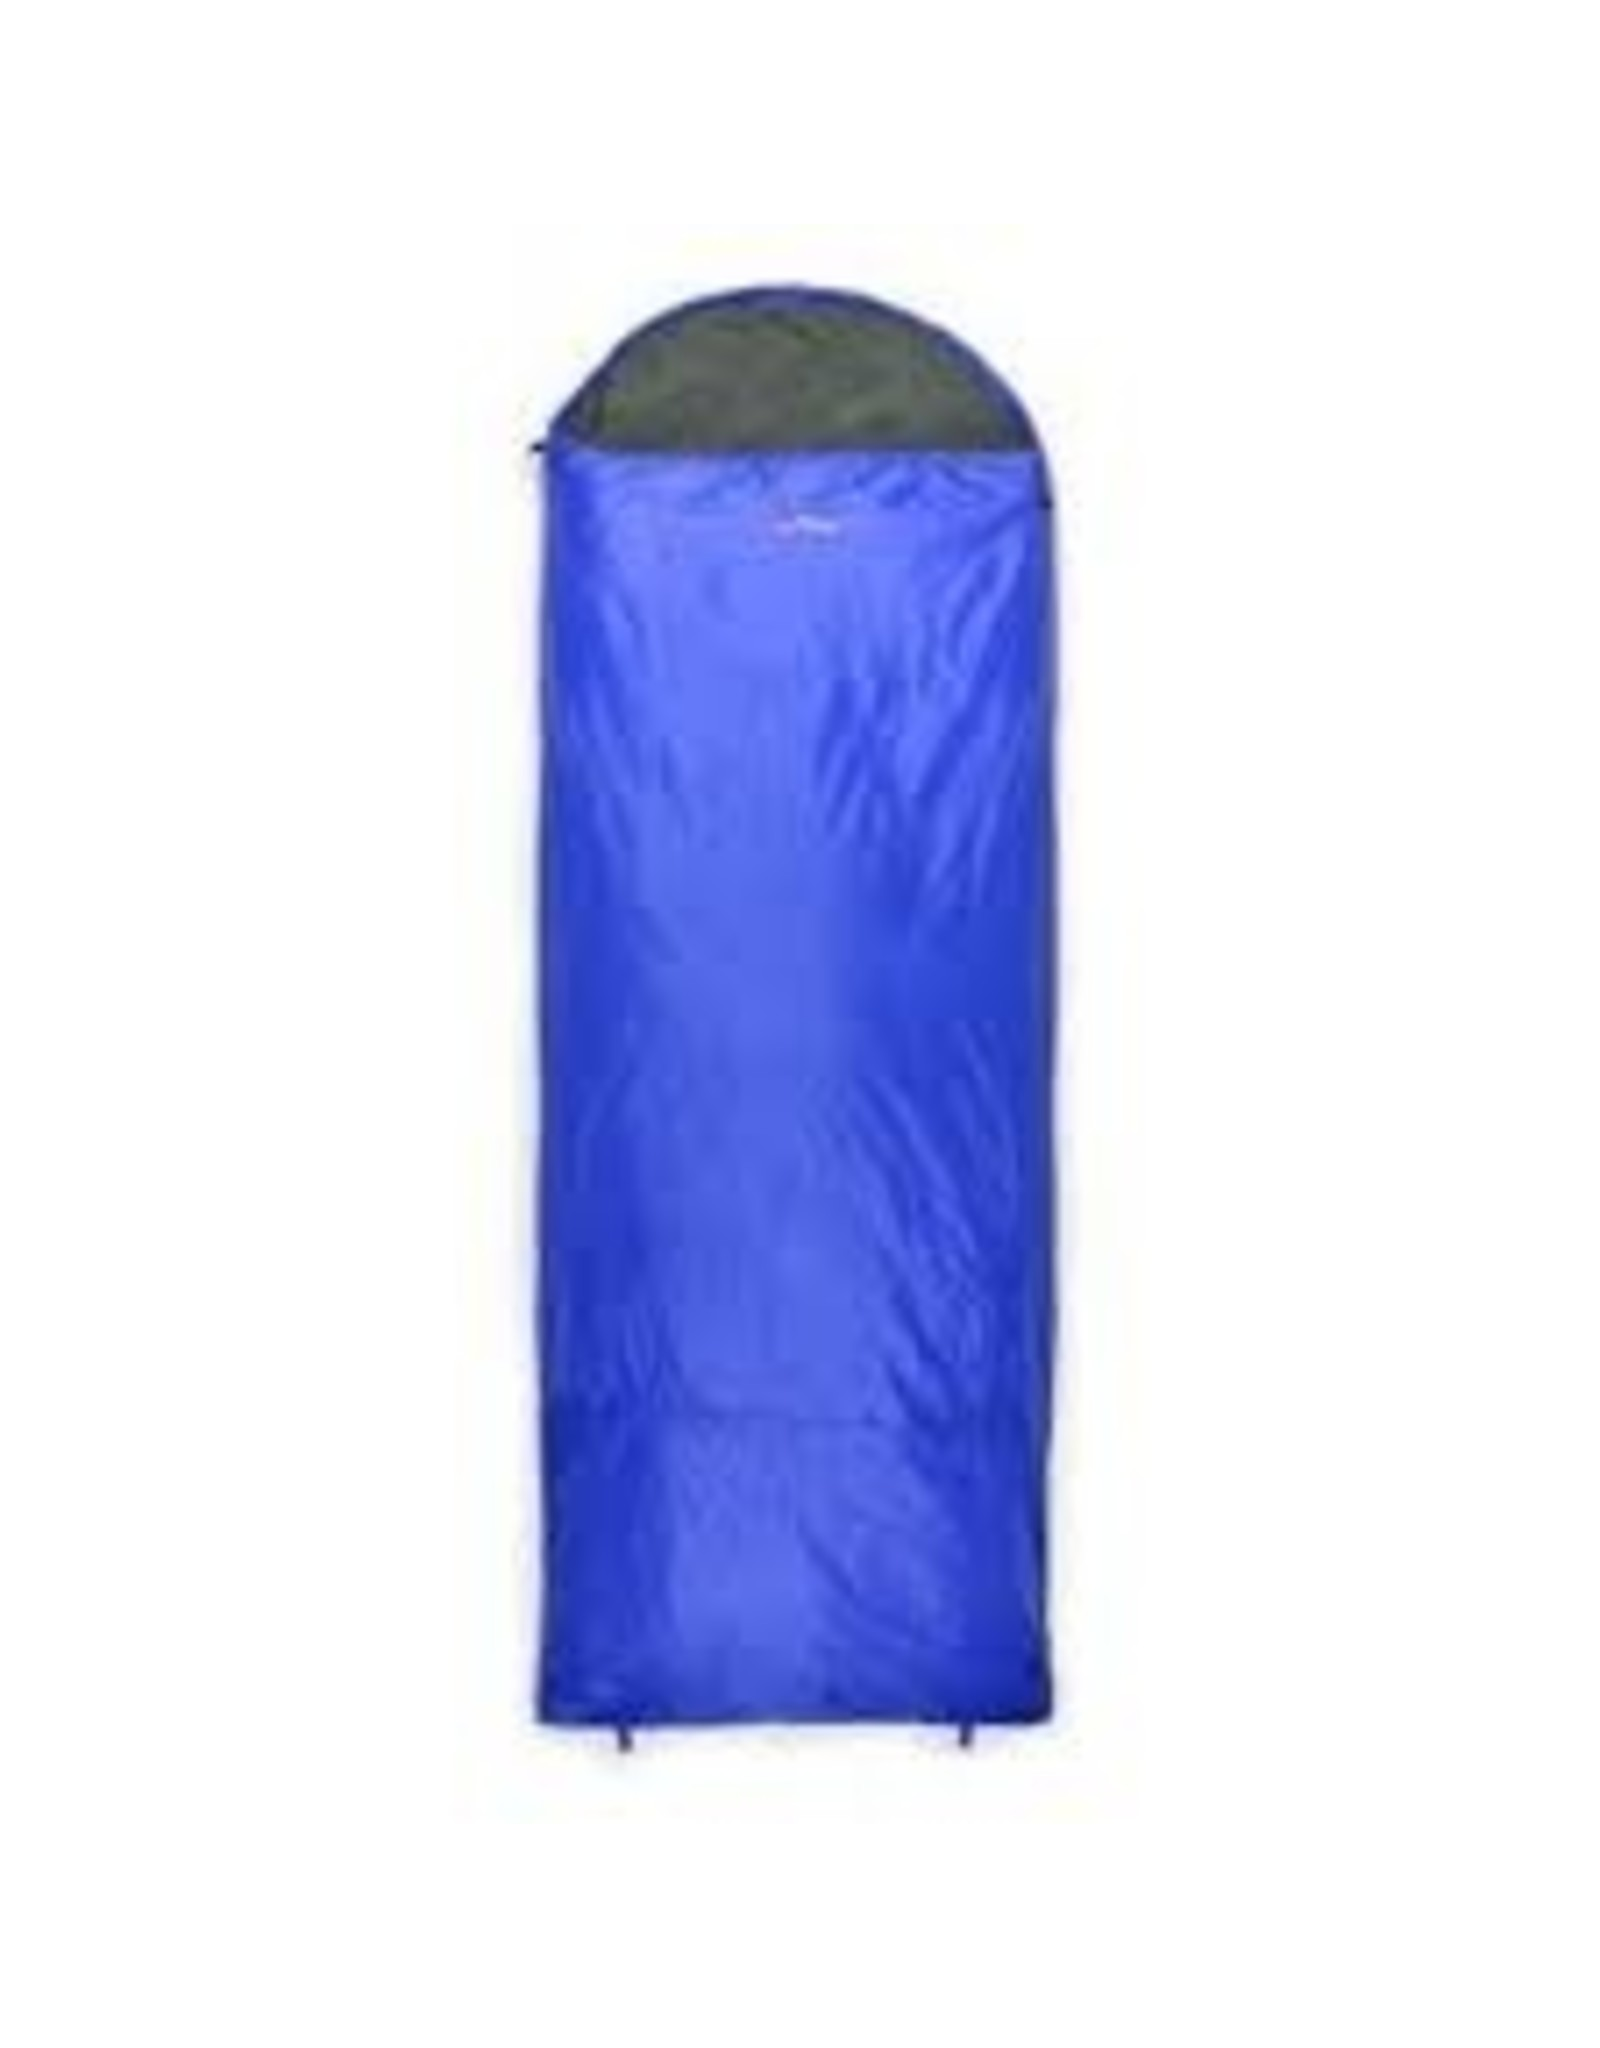 Chinook Chinook THERMOPALM HOODED RECT 50F (BLUE) Sleeping Bag